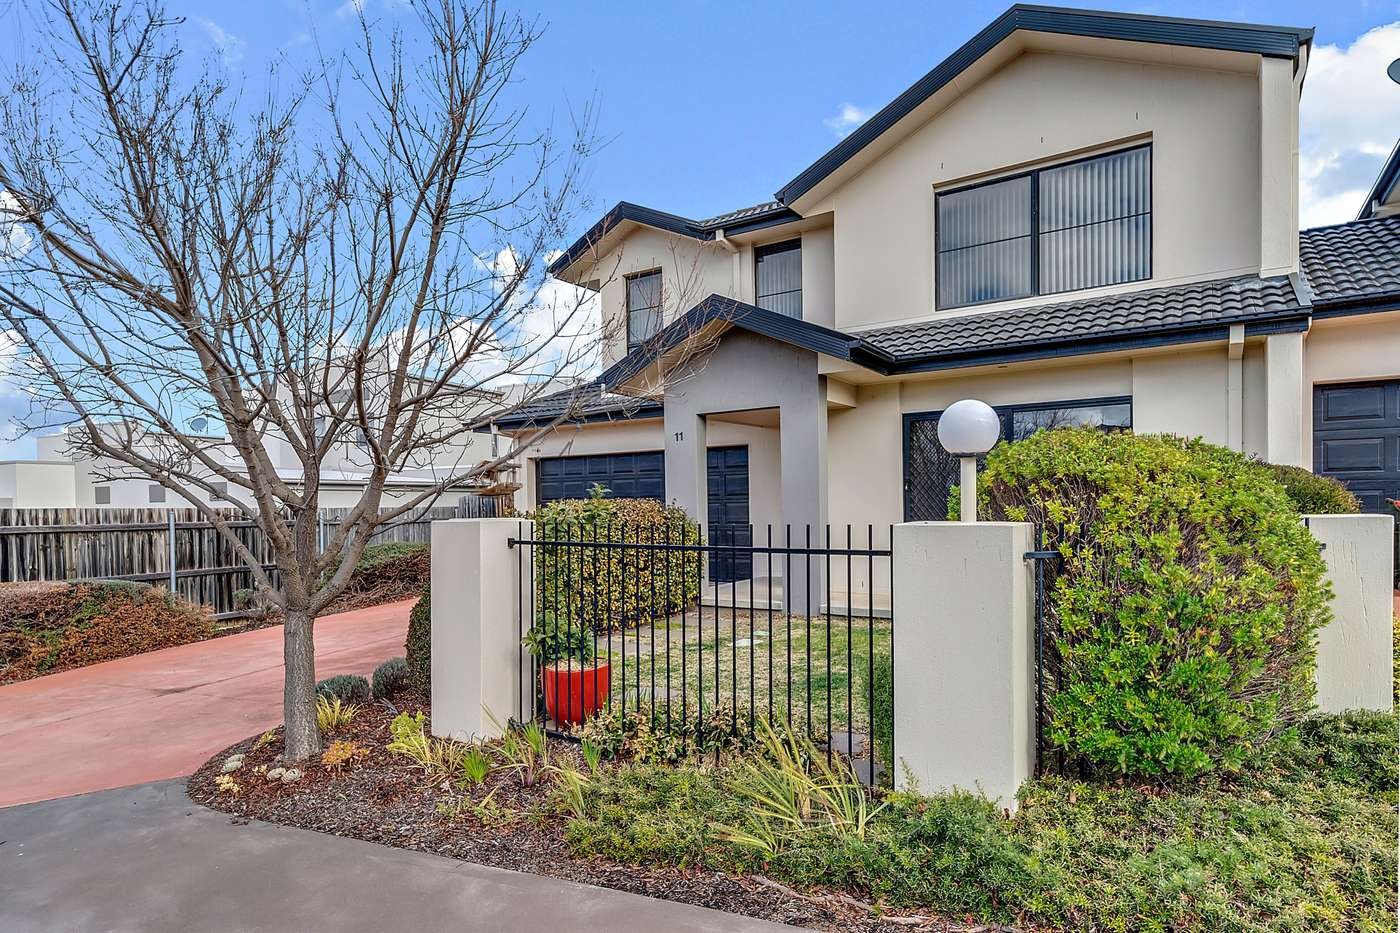 Main view of Homely townhouse listing, 11/23 Kinloch Circuit, Bruce, ACT 2617